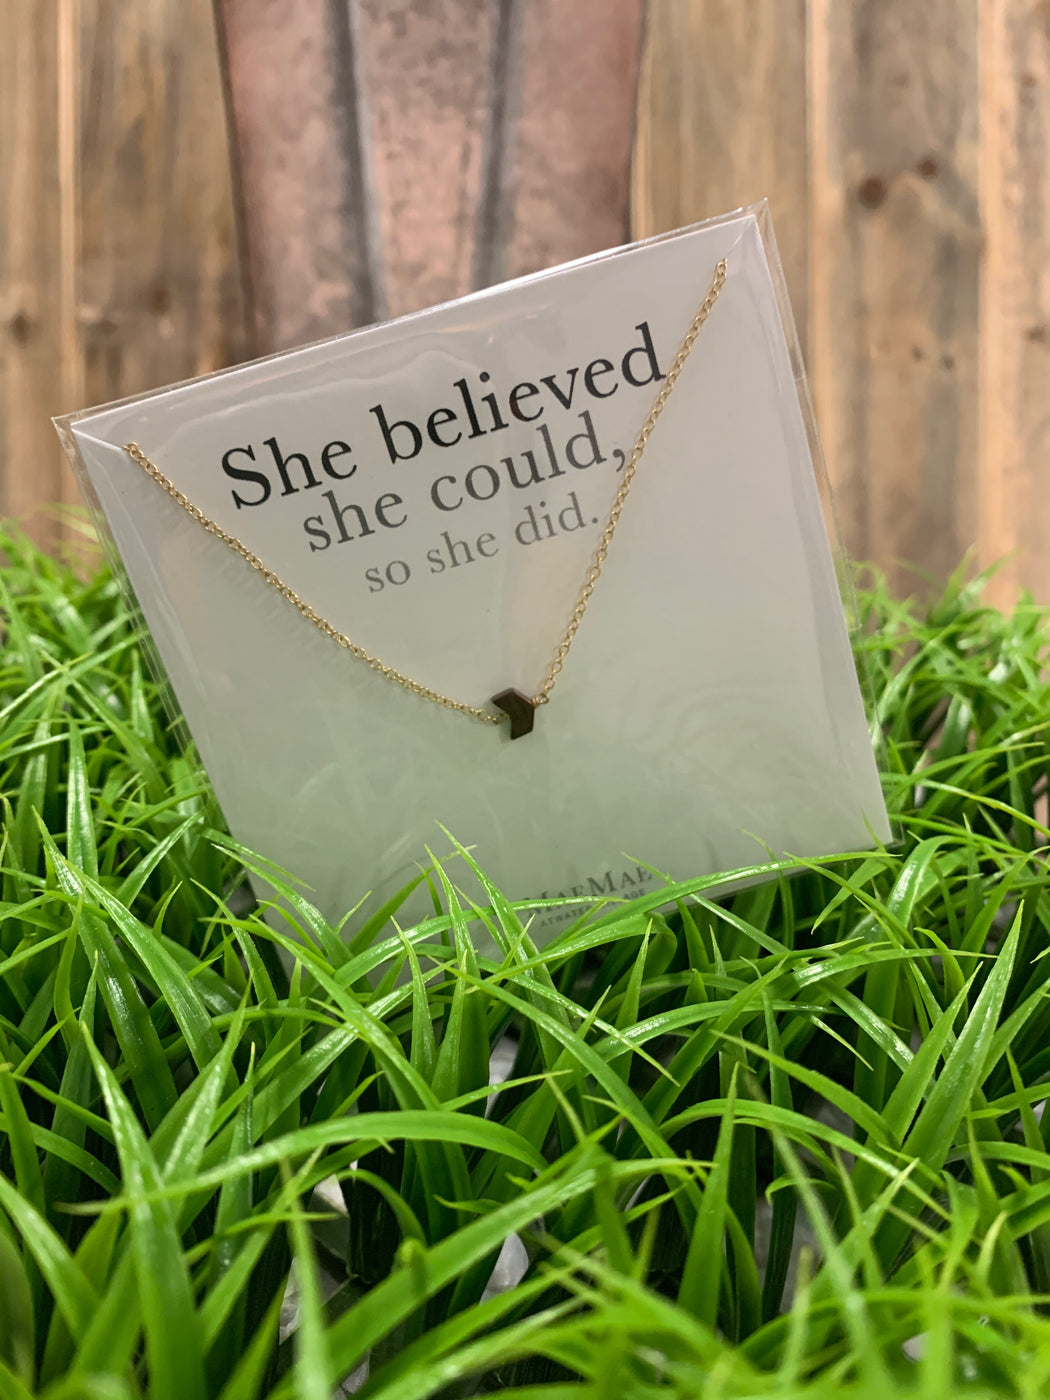 She Believed She Could, So She Did Necklace